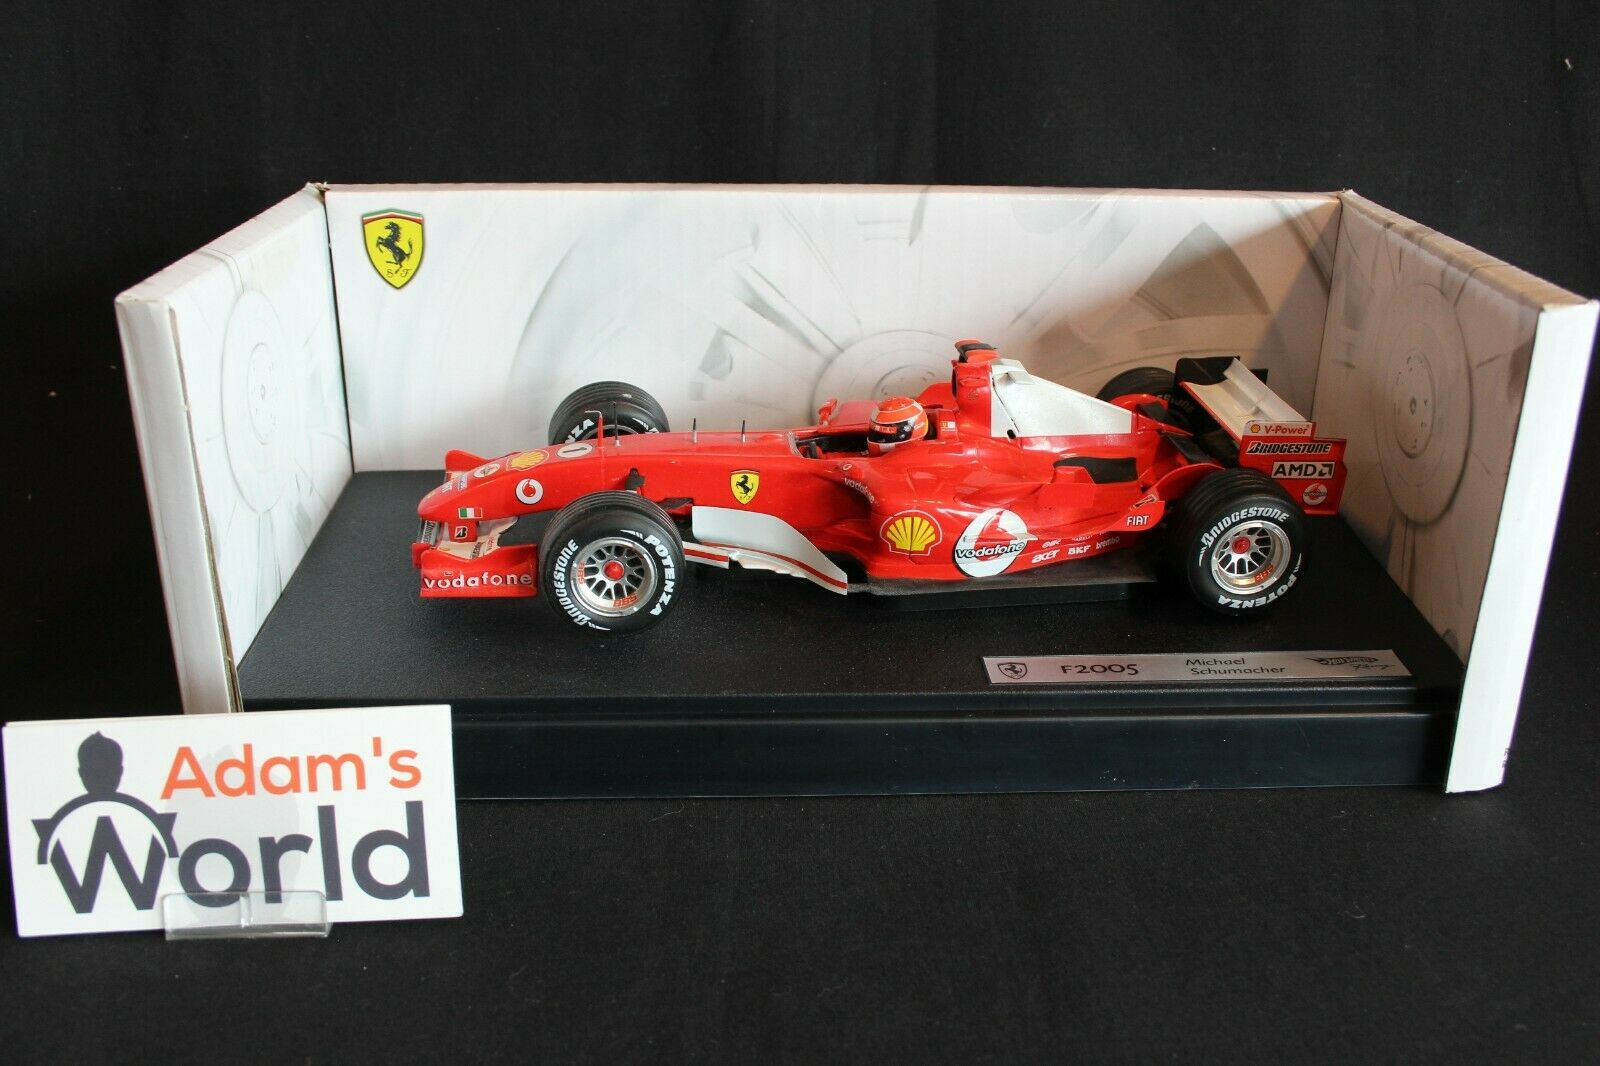 Hot Wheels Ferrari F2005 2005 1 18 Michael Schumacher (GER) (PJBB)